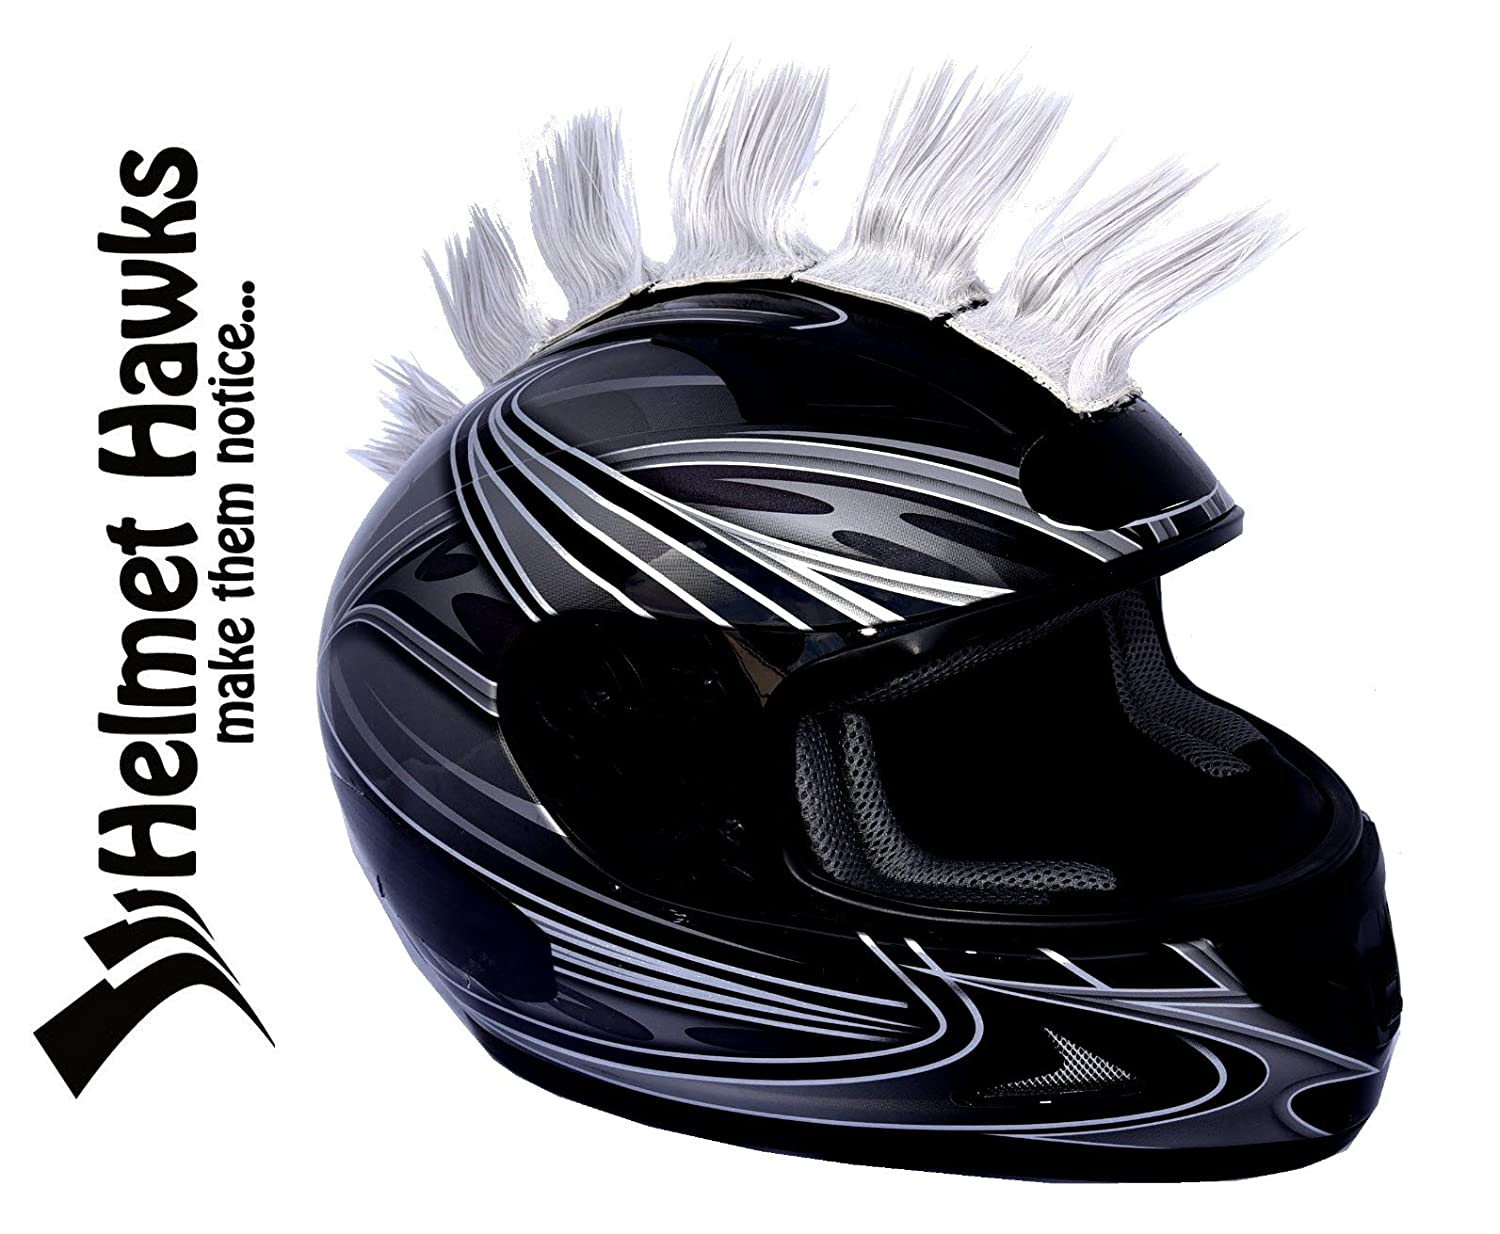 Helmet Hawks Motorcycle, Ski, Snowboard Mohawk w/Sticky Hook and Loop Fastener Adhesive (8) Hair Patches 2' long x 3' Tall- Forest Green Snowboard Mohawk w/Sticky Hook and Loop Fastener Adhesive (8) Hair Patches 2 long x 3 Tall- Forest Green CaliBikerClub